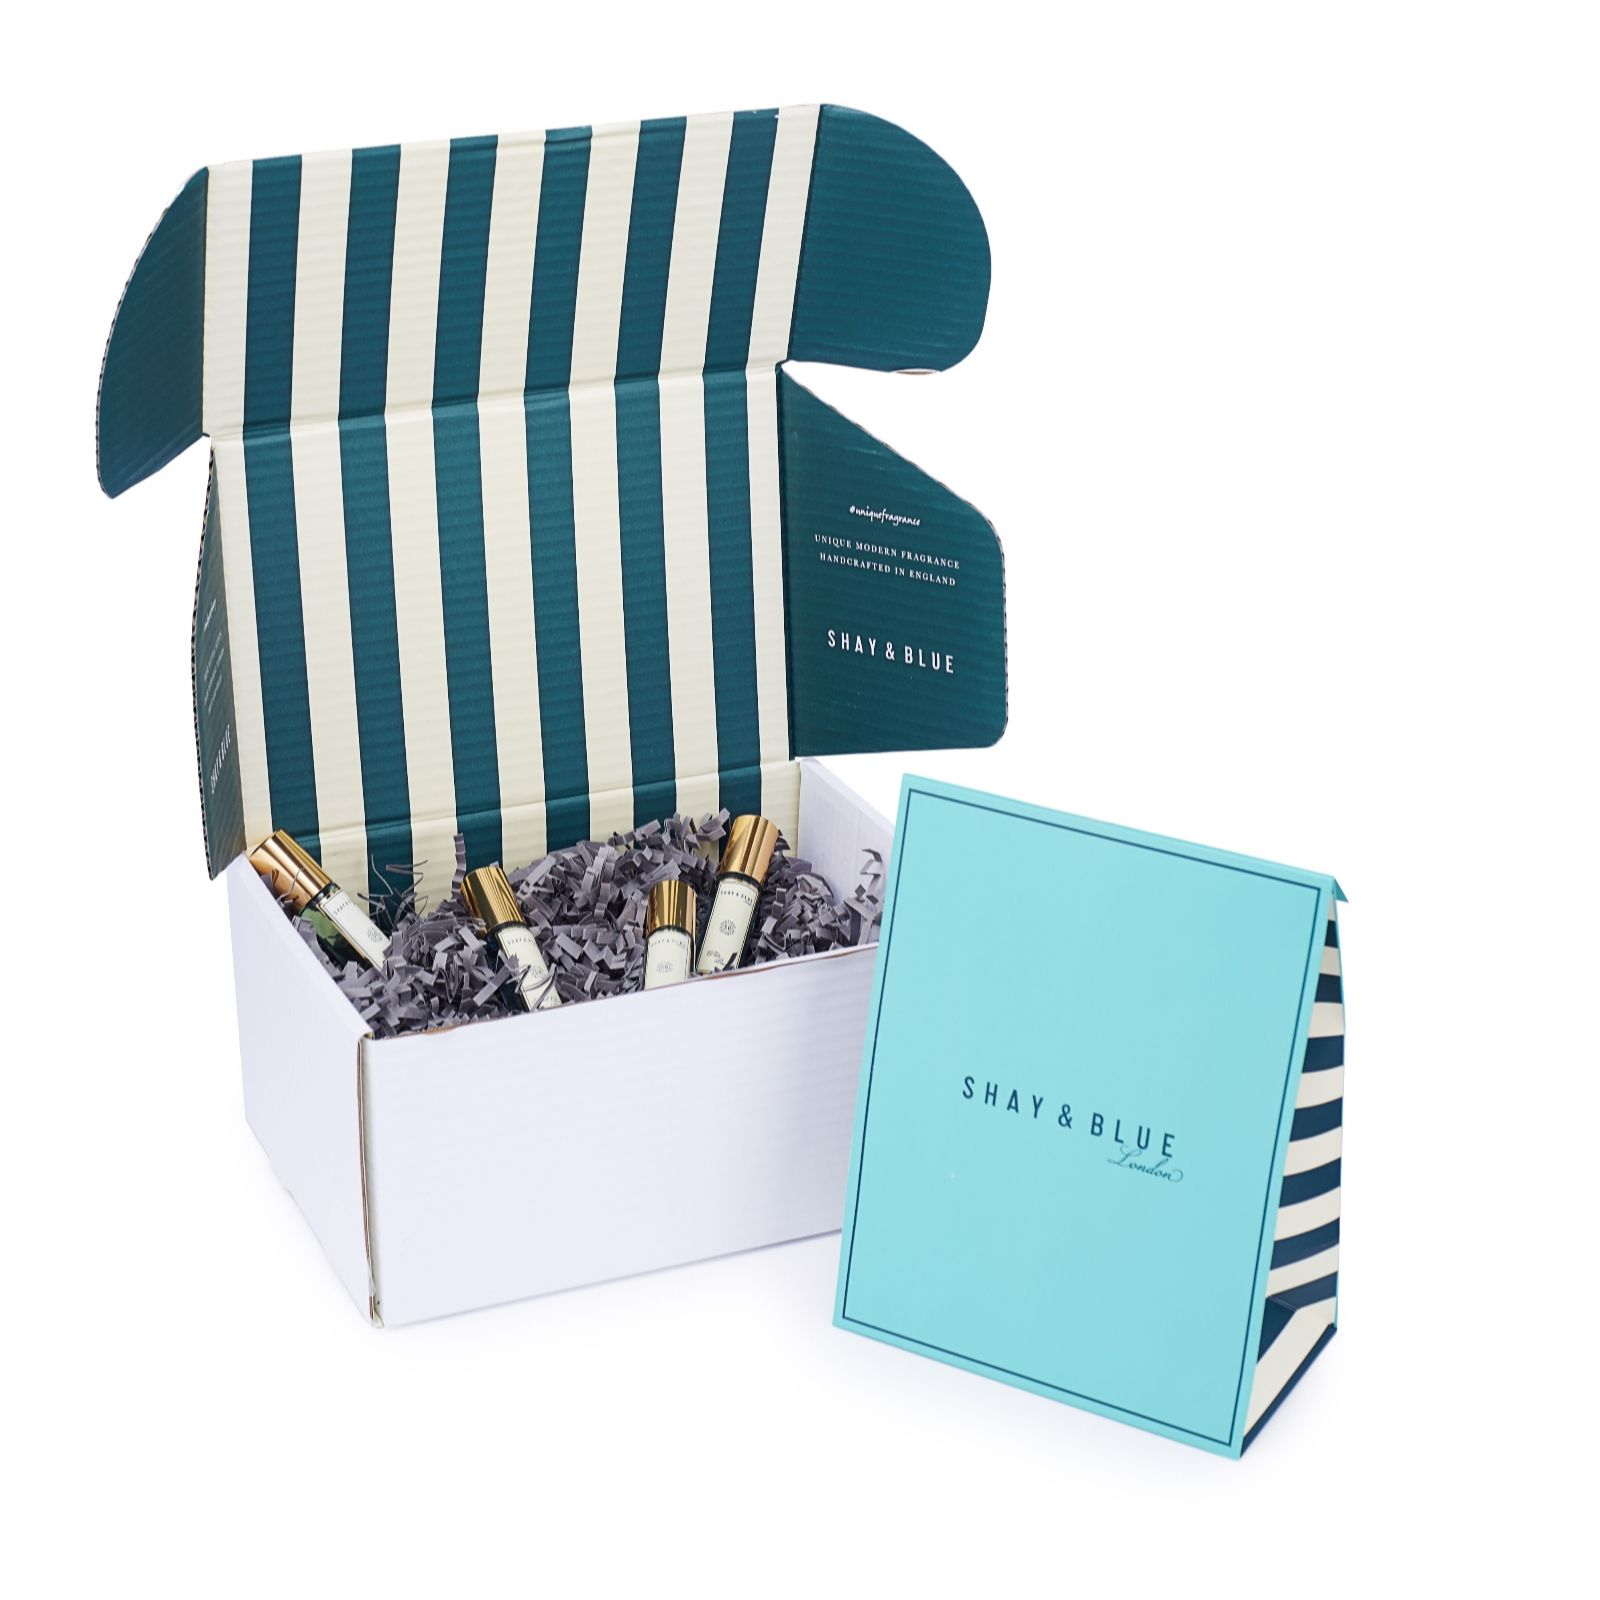 Shay & Blue 4 Piece Summer Fragrance Collection - QVC UK